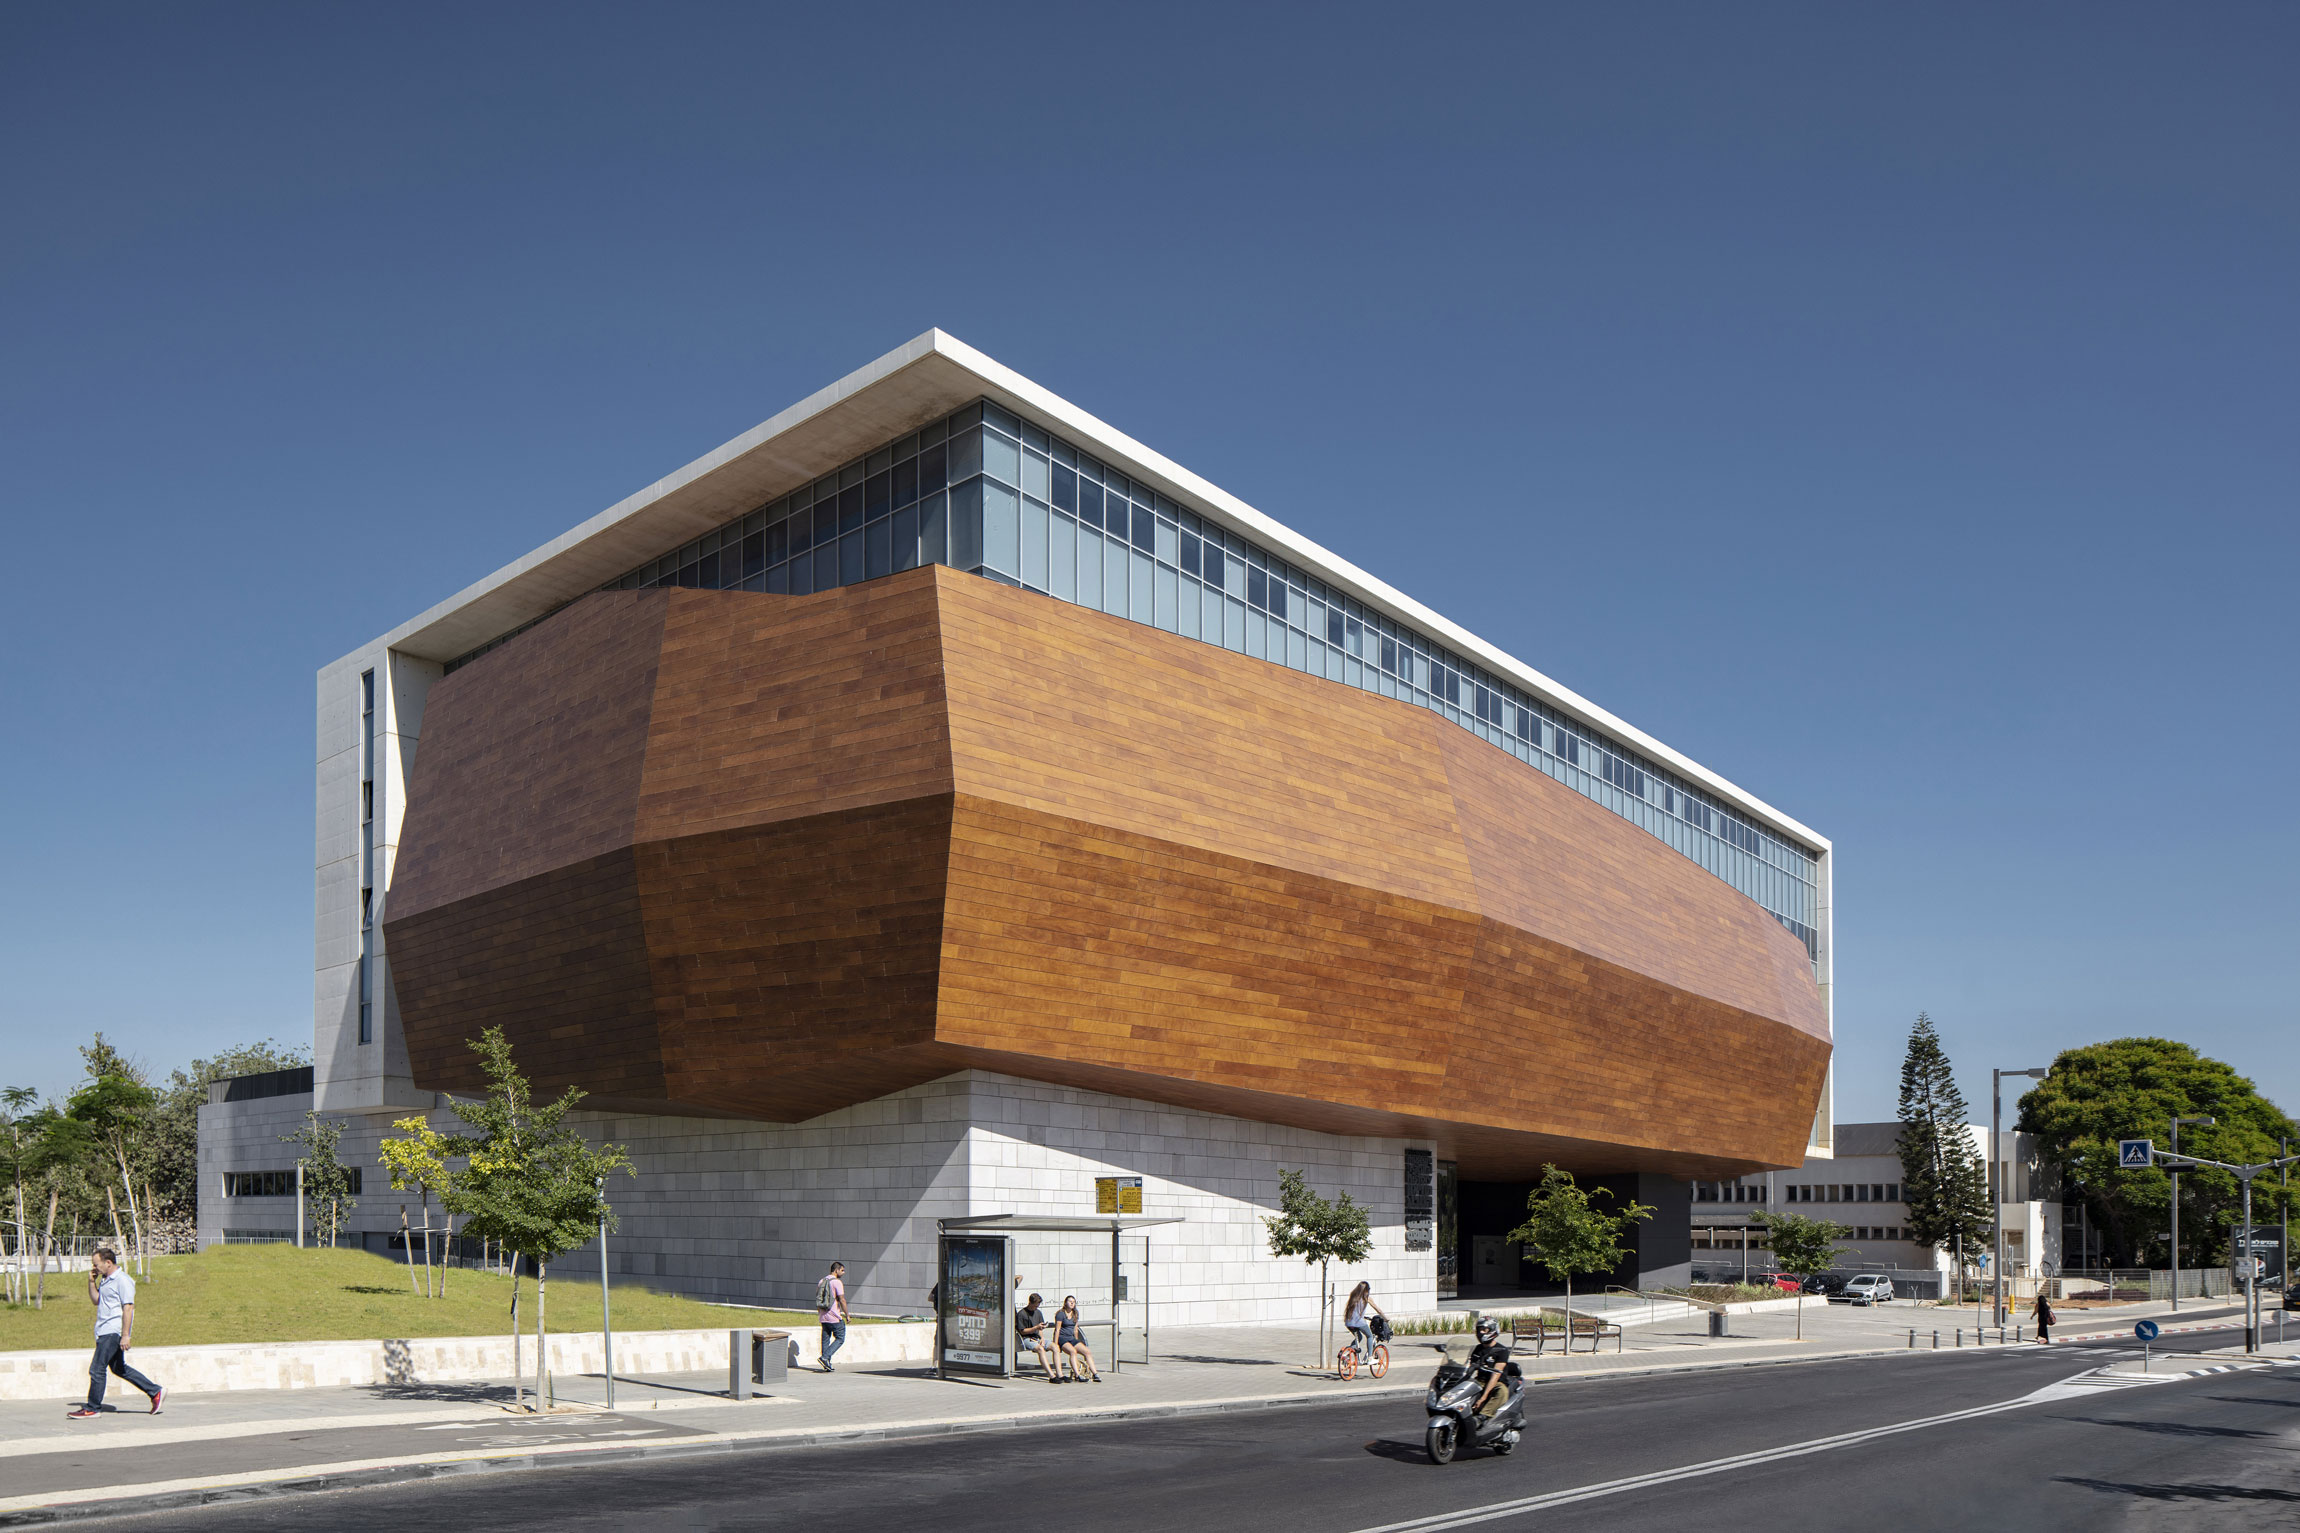 The Steinhardt Museum Of Natural History By Kimmel Eshkolot Architects